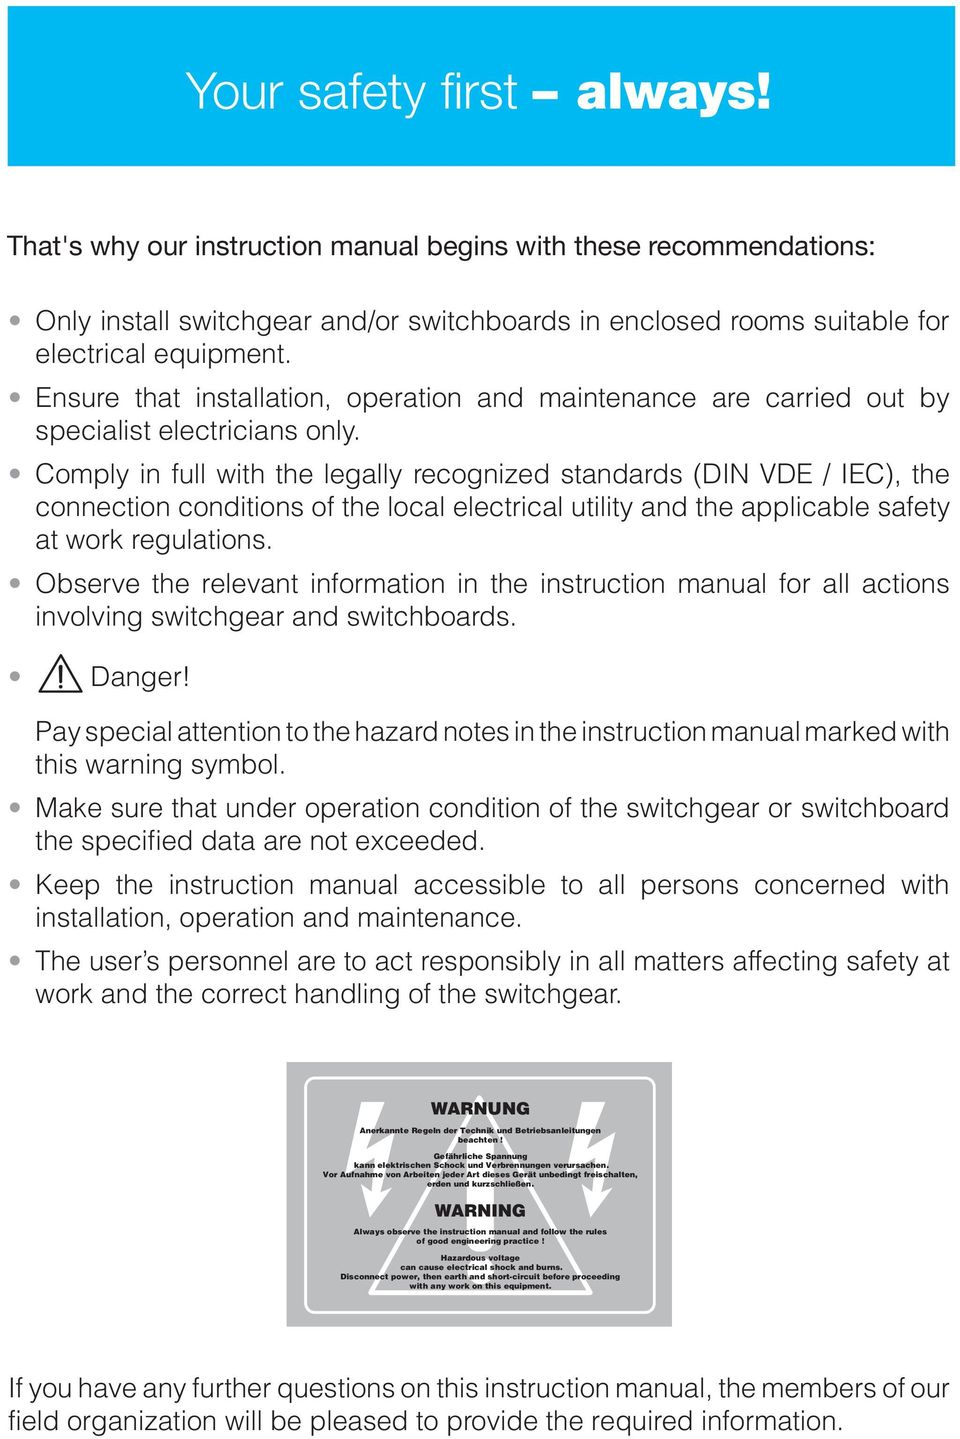 Vd4 Vacuum Circuit Breaker 36 Kv Instruction Manual Ba 434 03 E Abb Air Wiring Diagram Comply In Full With The Legally Recognized Standards Din Vde Iec